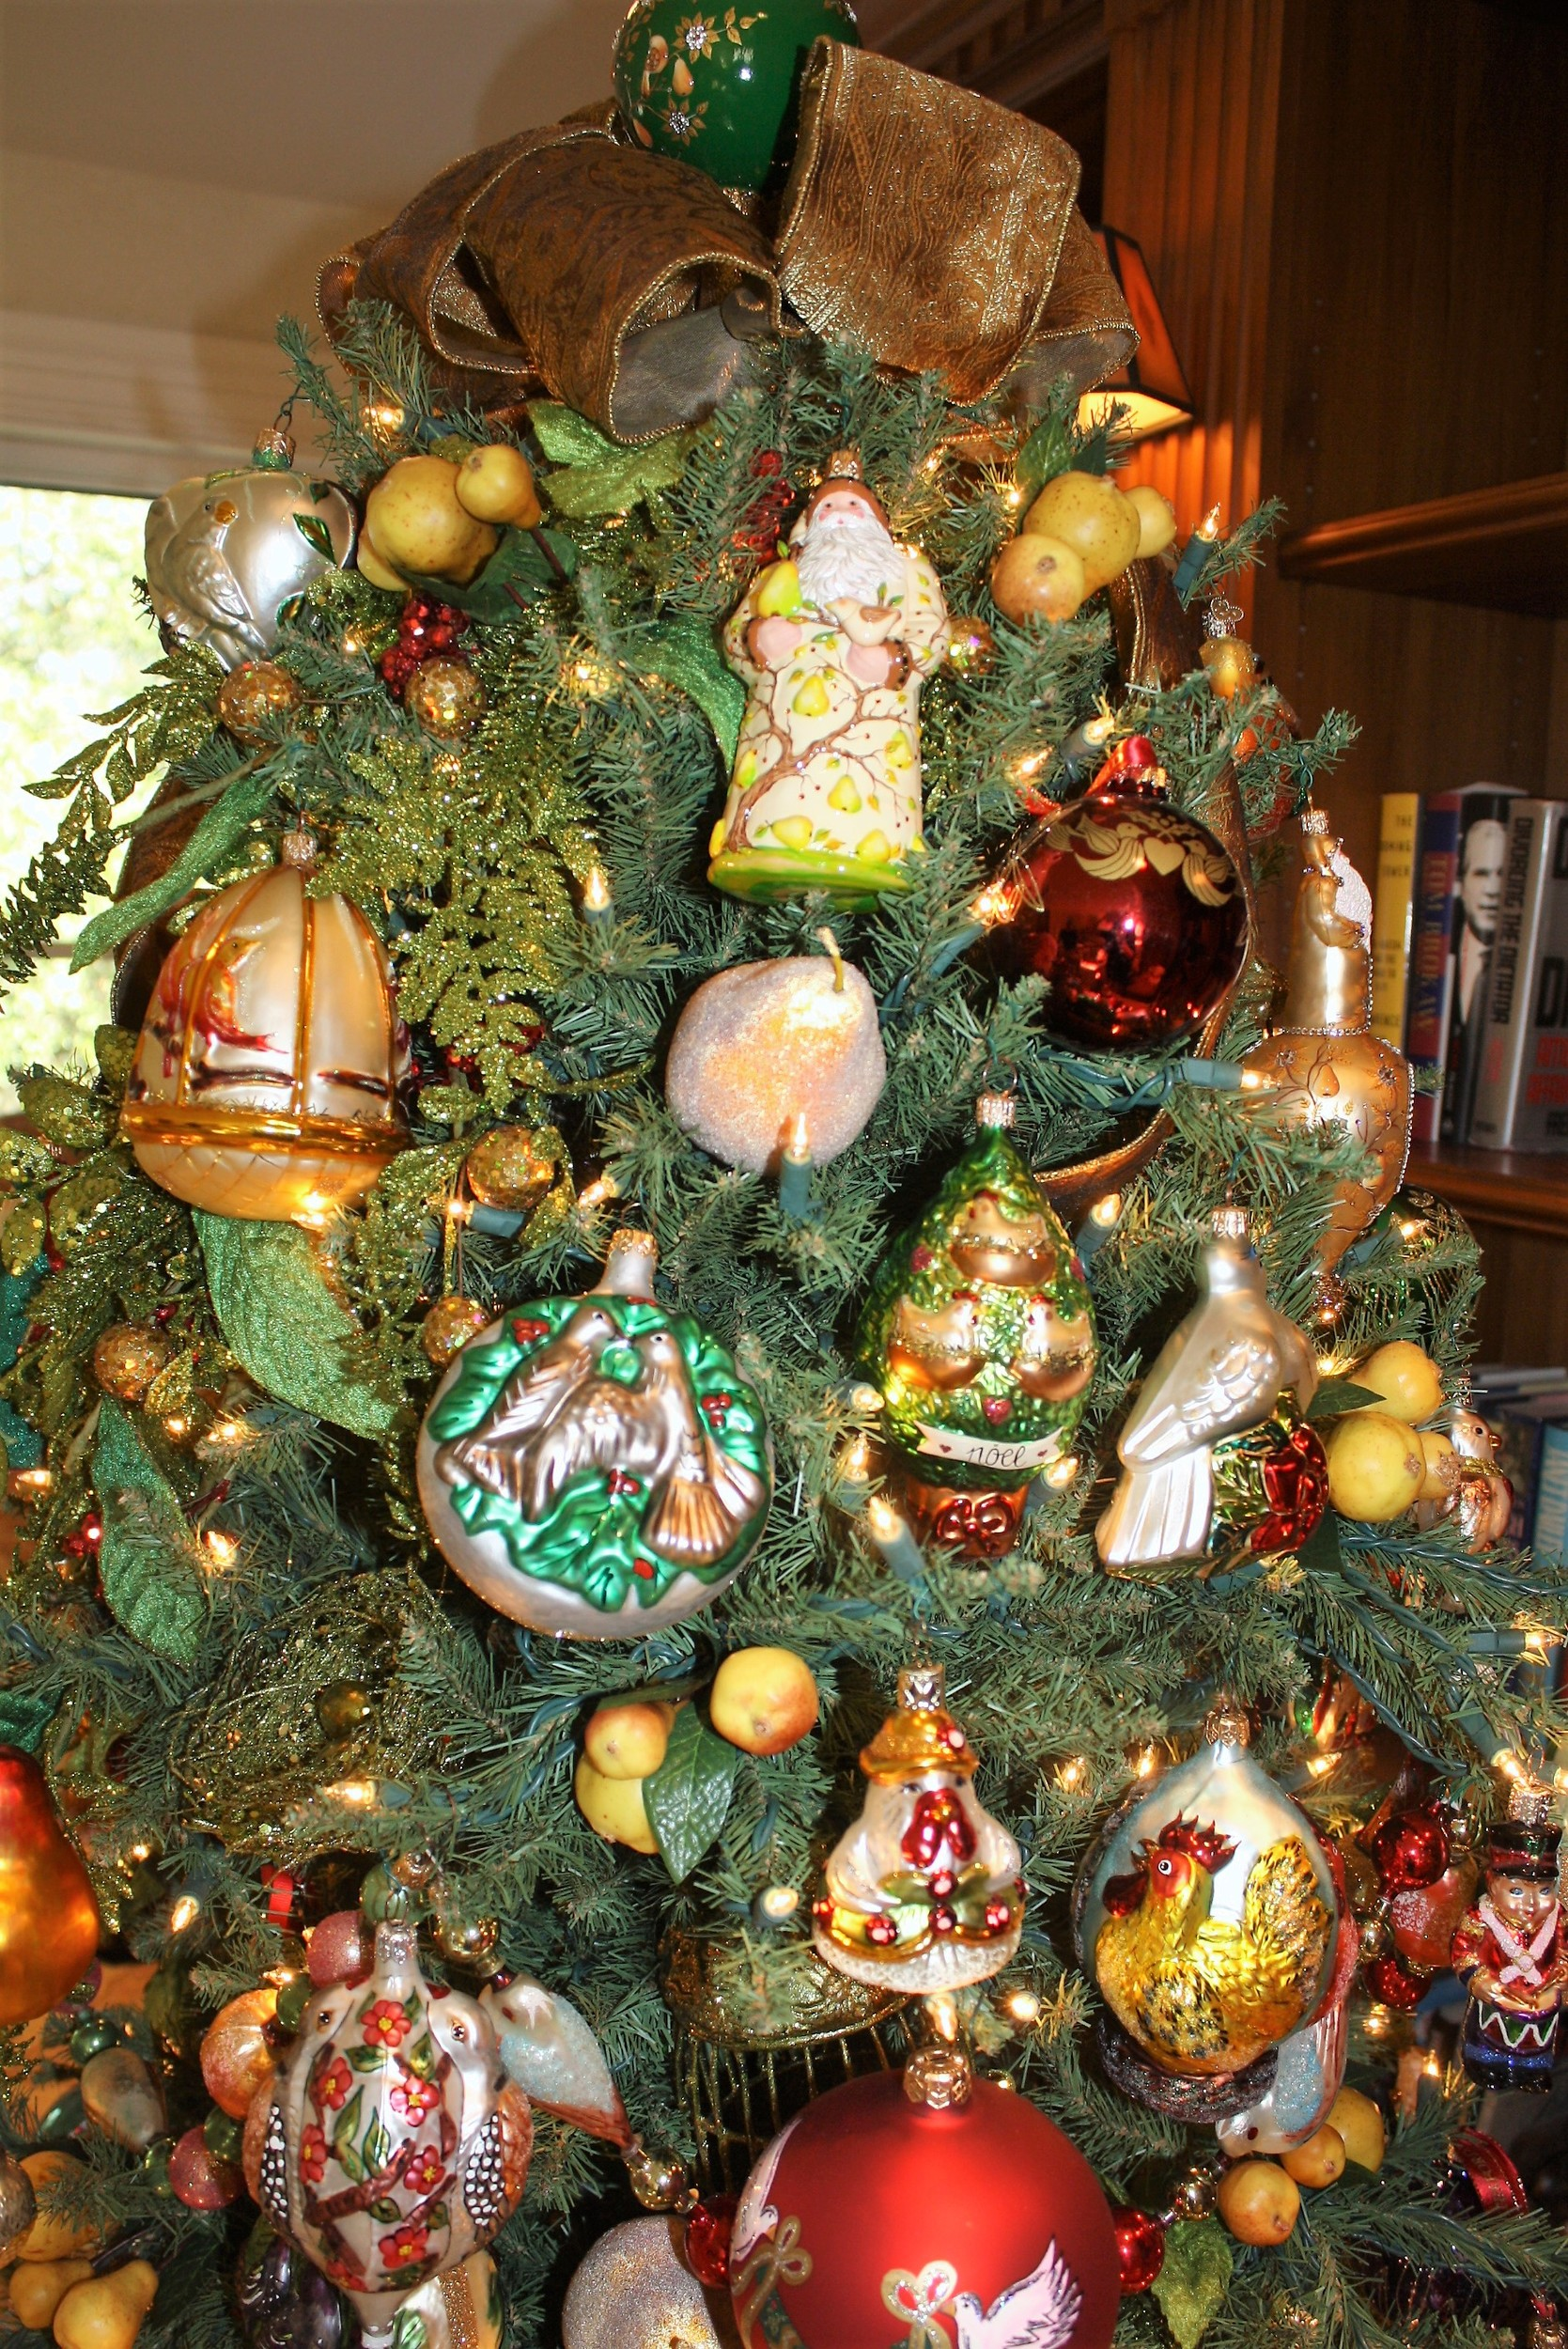 12 Days Of Christmas Tree Ornaments